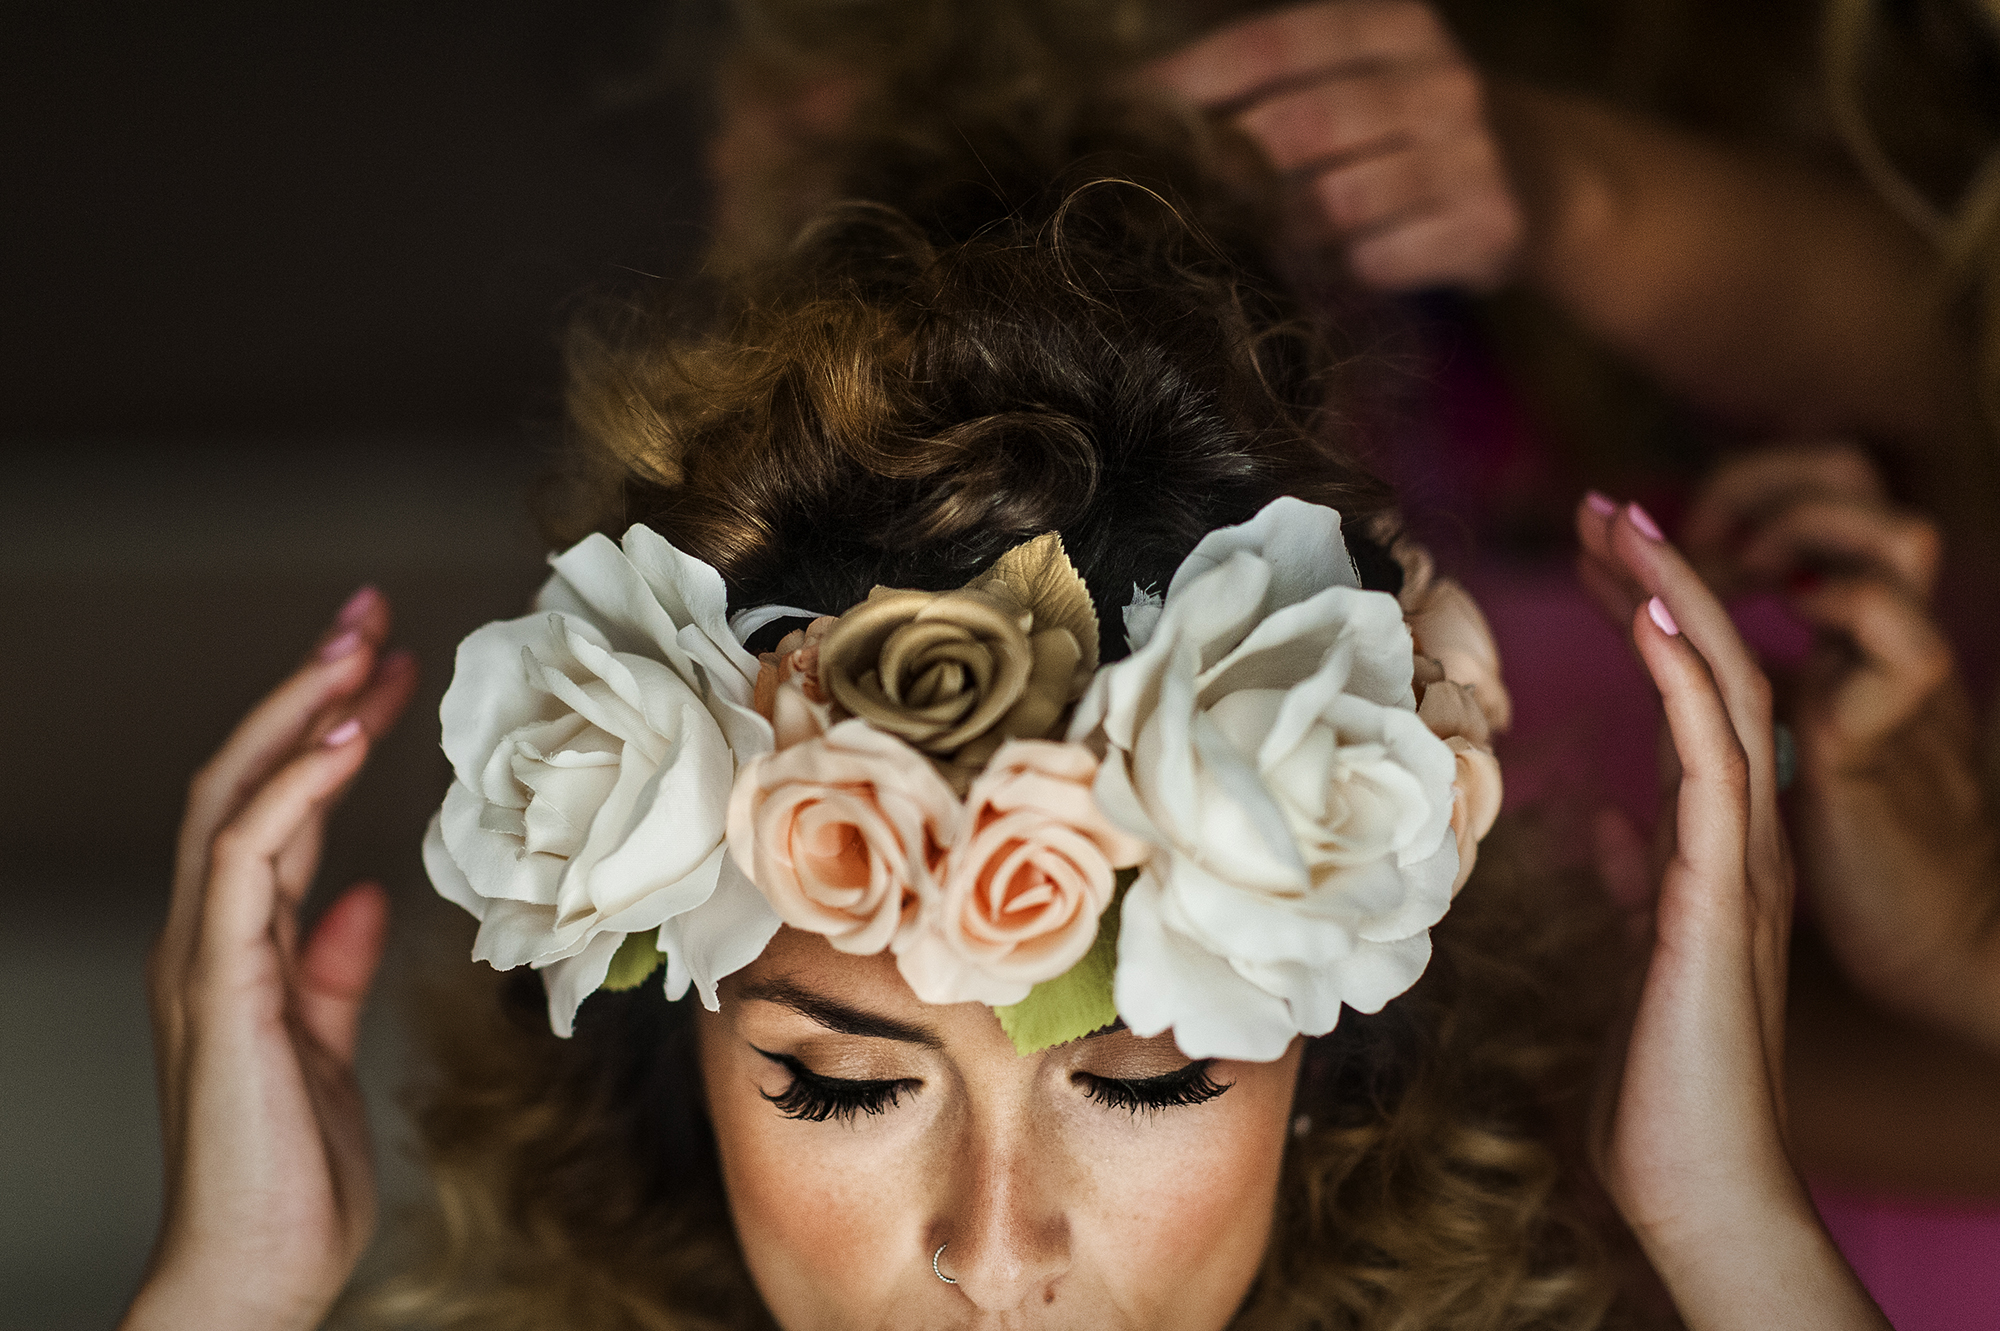 Pink and white floral crown of roses with golden rose accent - photographed by Victor Lax - Spain